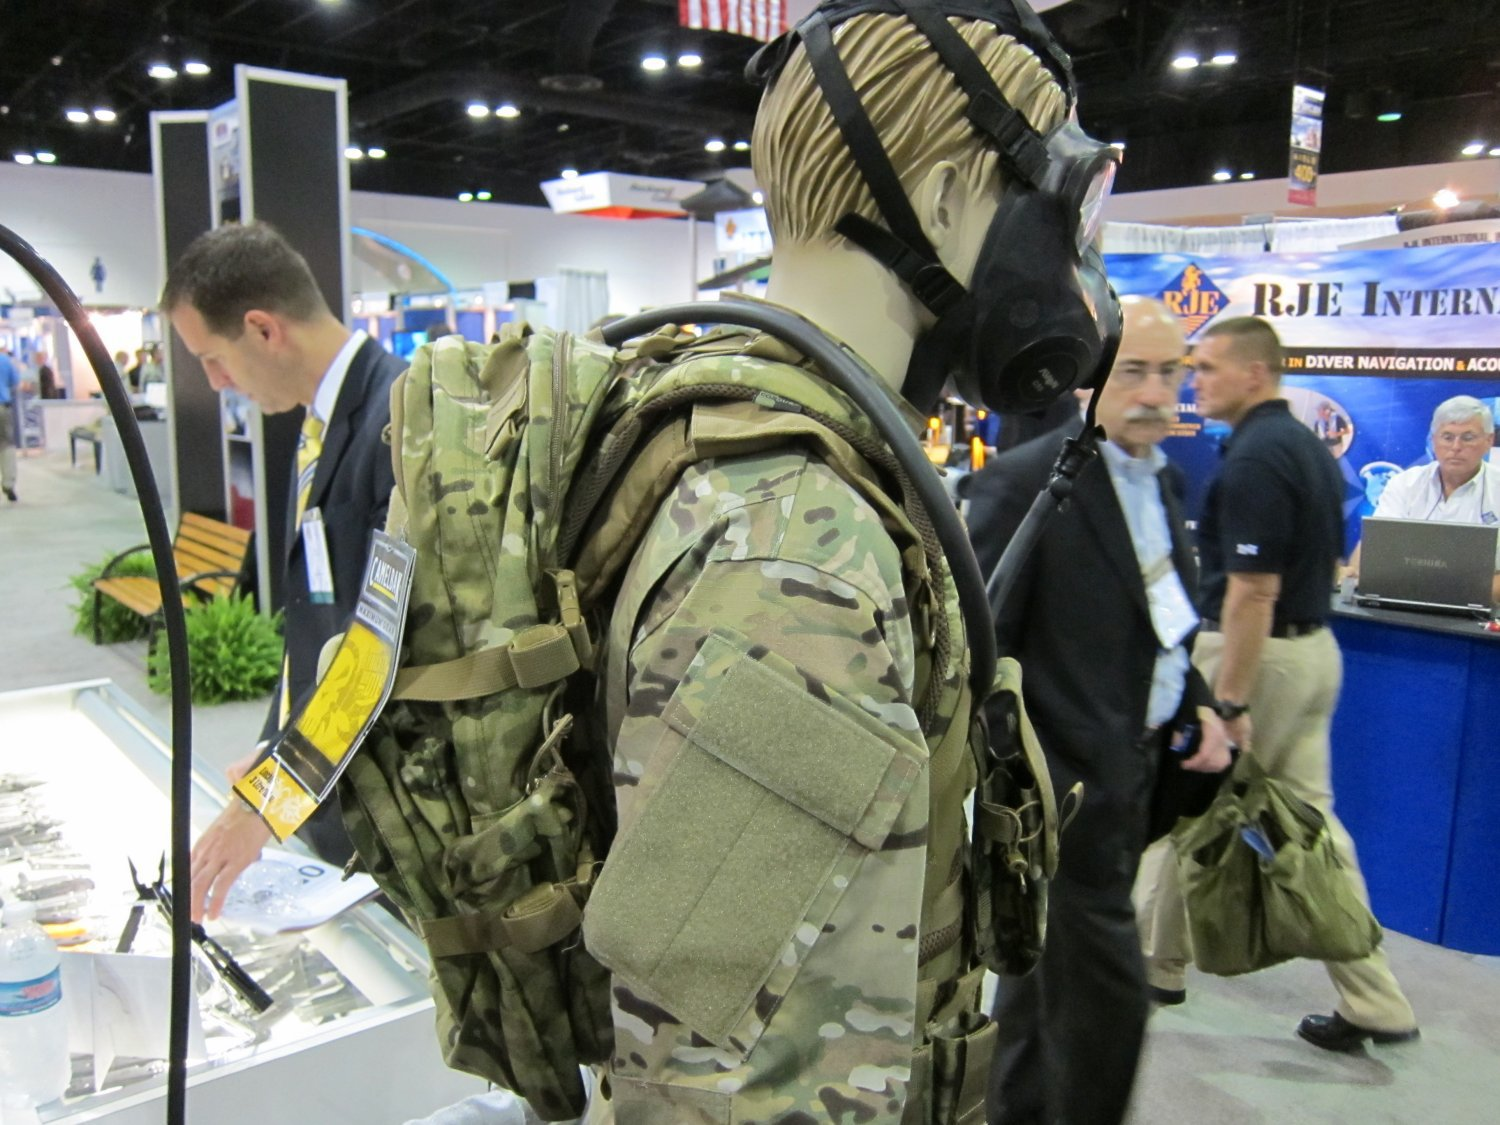 Camelbak Mule Tactical Hydration Pack Crye MultiCam Camo SOFIC 2011 2 <!  :en  >Camelbak Ambush AB 500, Thermobak AB, and Linchpin Tactical Hydration Packs/Reservoirs with Direct Armor Attachment System (D.A.A.S.): Strap your tactical hydration directly to your tactical armor plate carrier/tactical vest system! <!  :  >